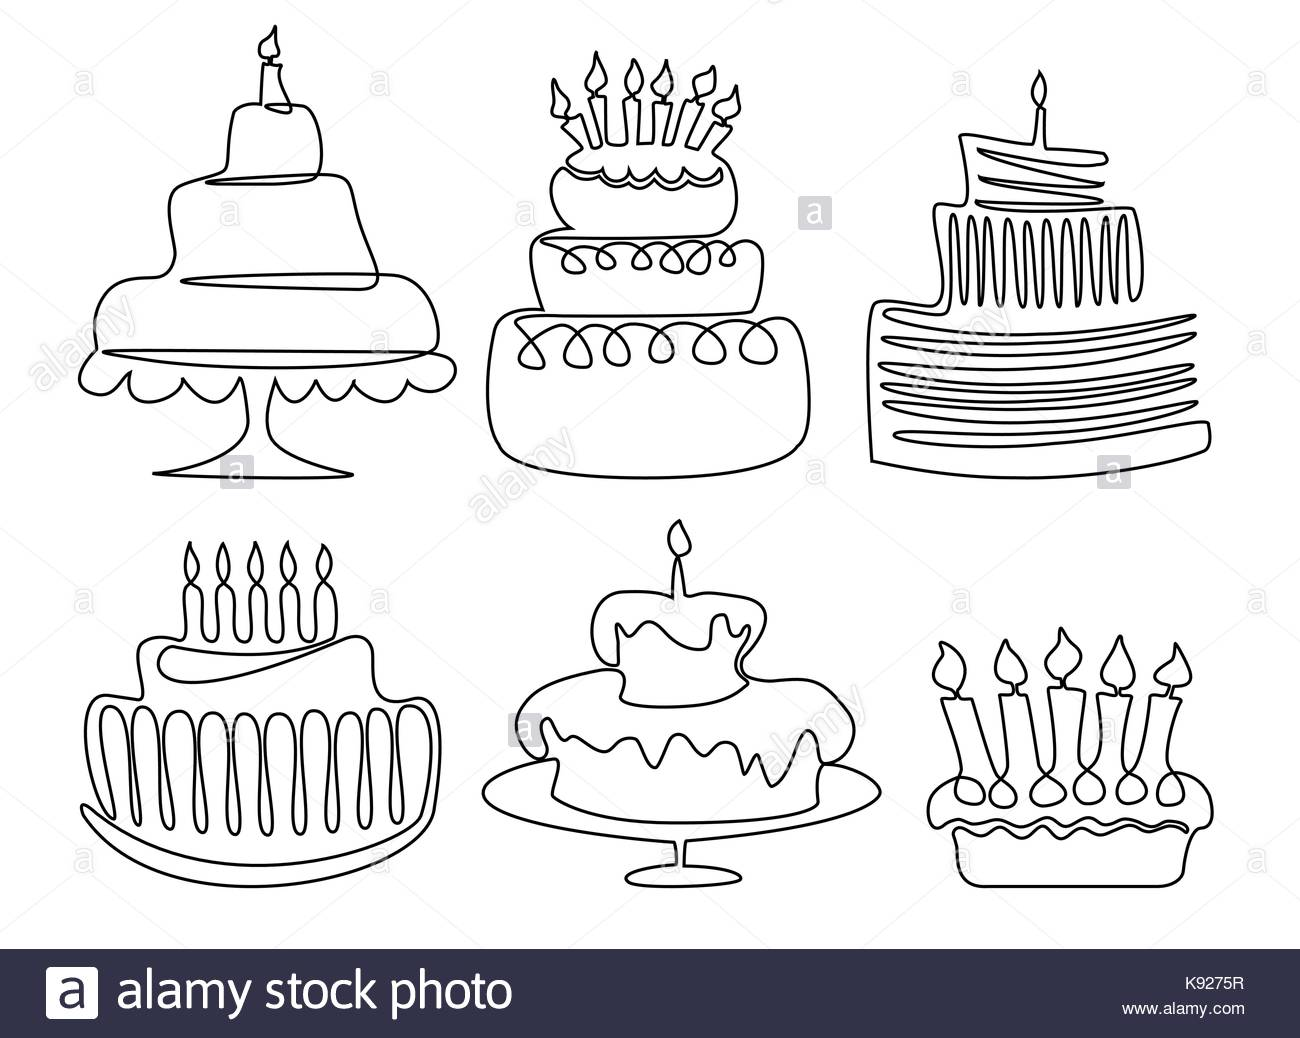 birthday cake line drawing ; birthday-cake-one-line-drawing-K9275R